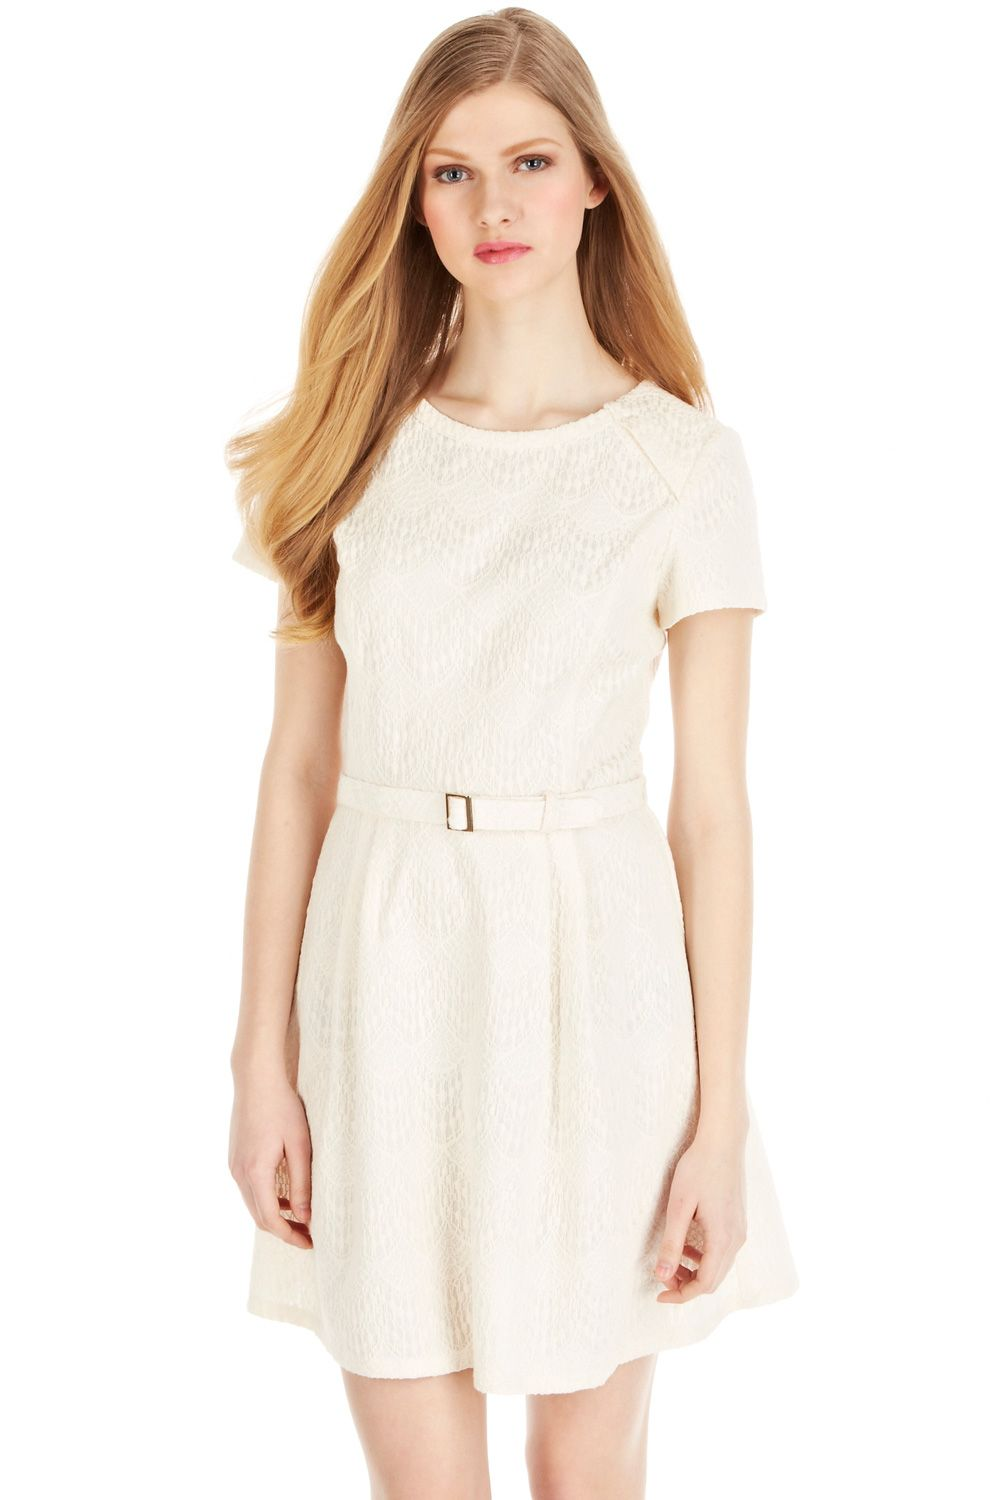 Cotton Bonded Dress   Natural   Oasis Stores